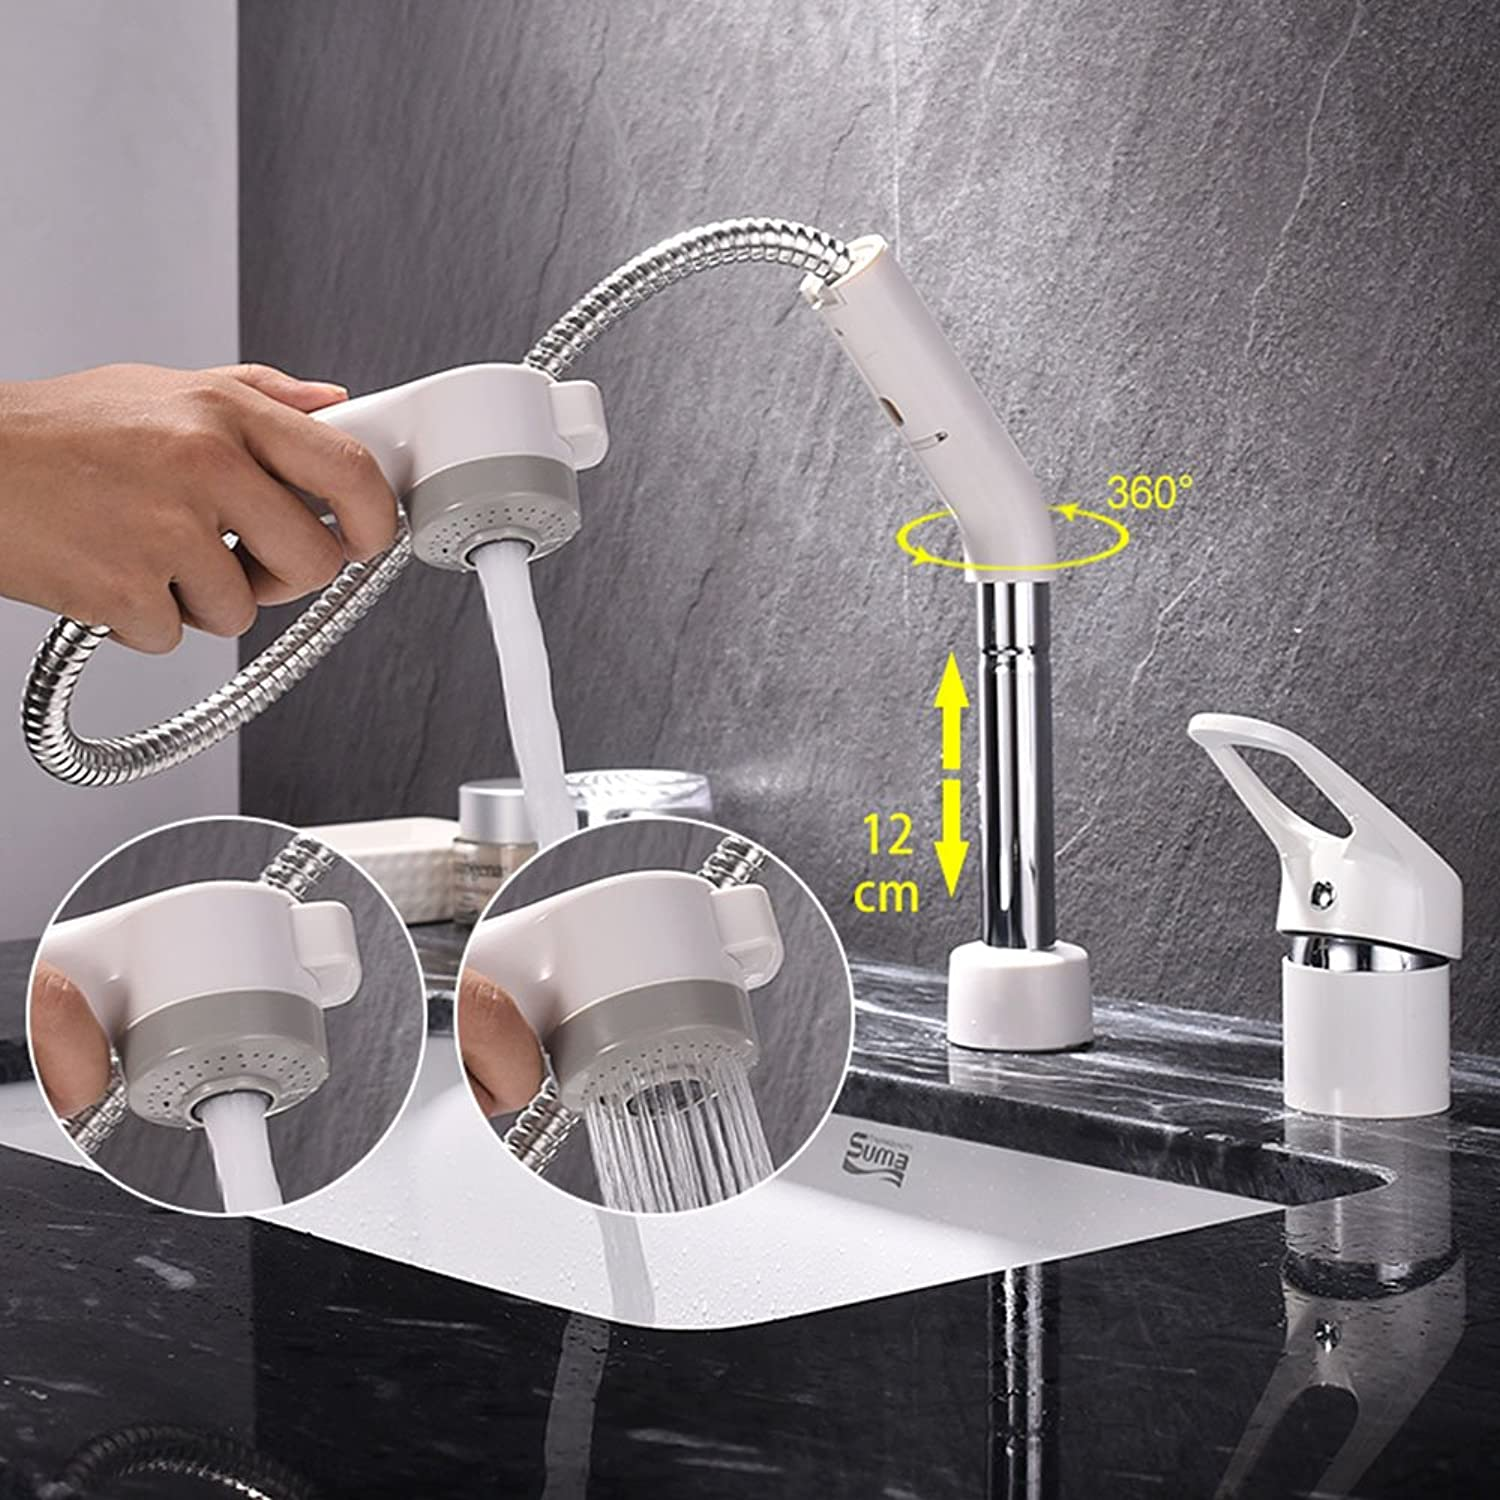 Jruia 2?Hole Design White Bathroom Pull Out Bathroom Sink Tap Single Lever Mixer Tap, Swivel range 360